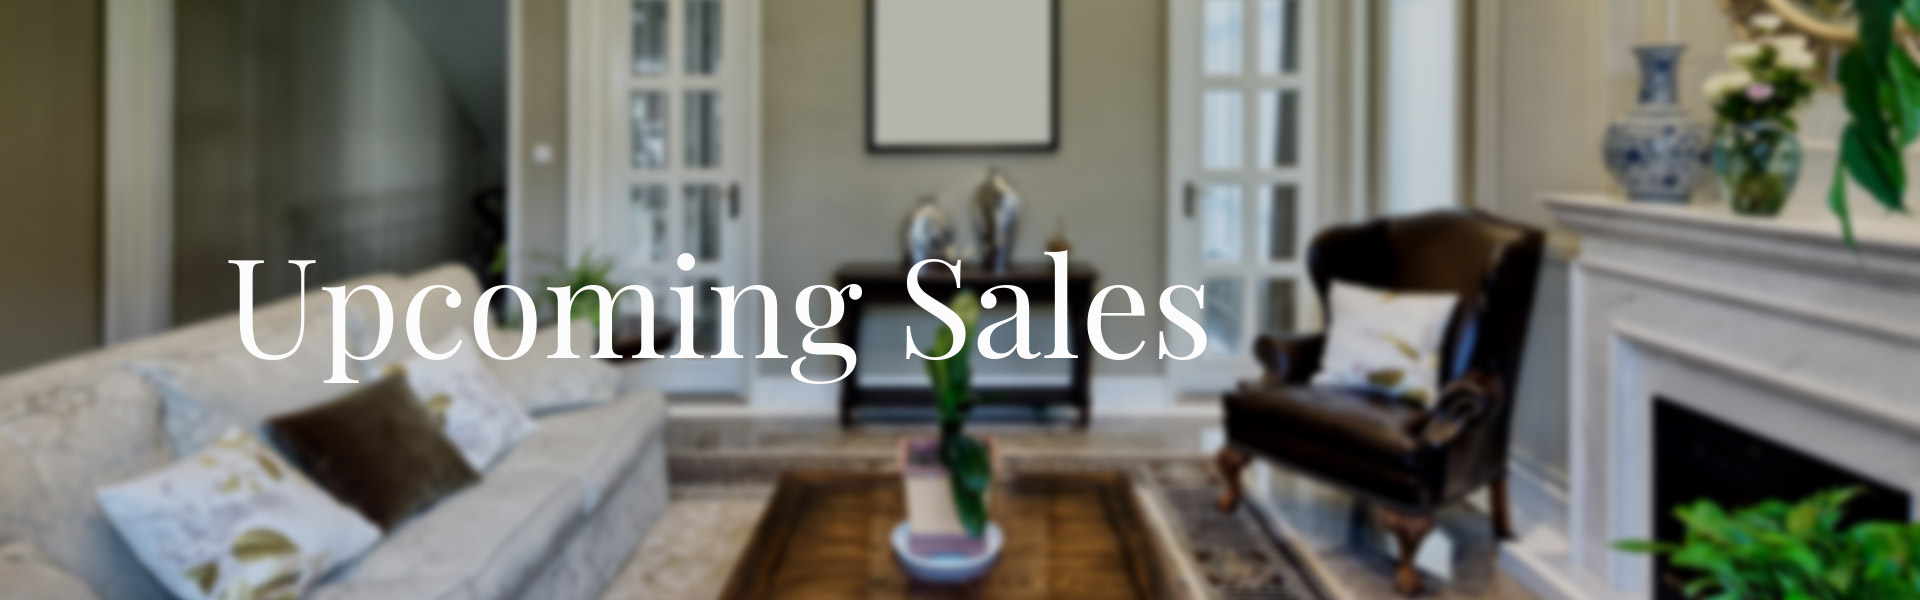 michael_taylor_estate_sales_upcoming_sales_header_room